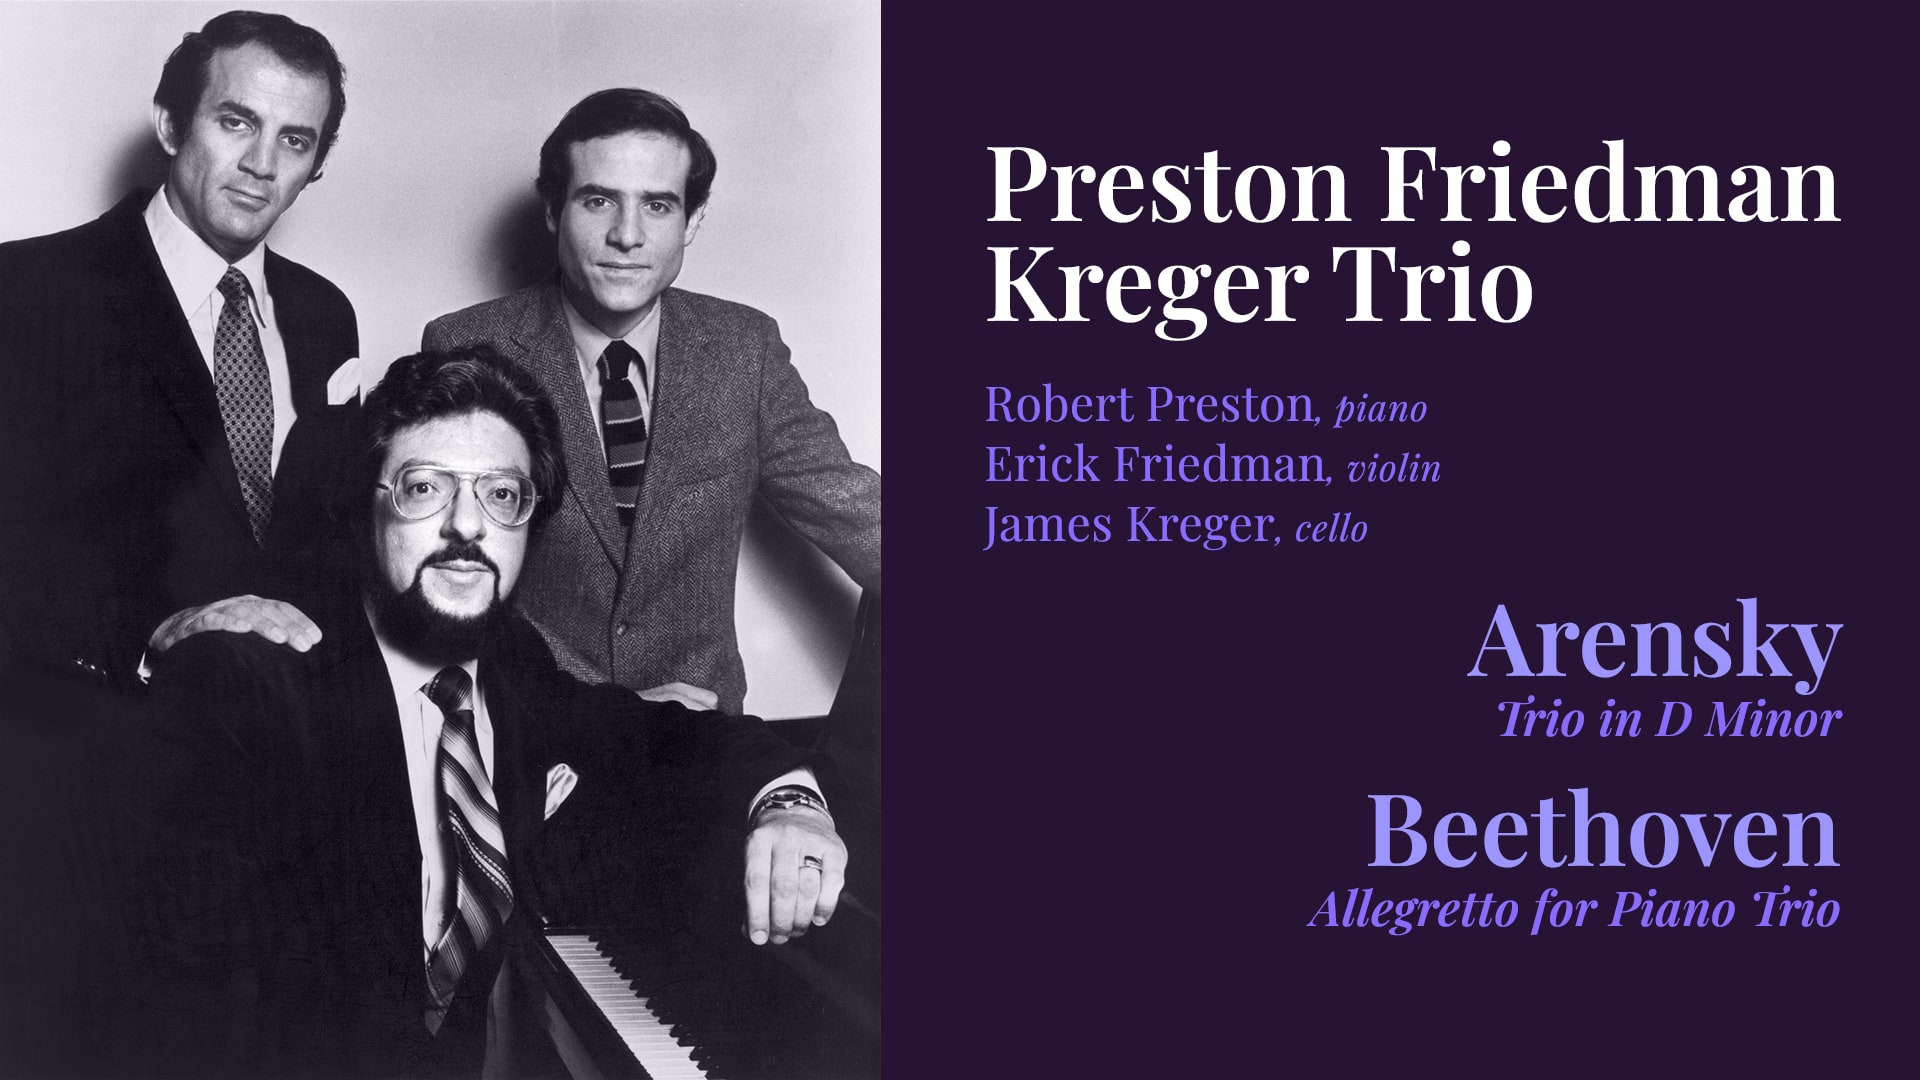 The Preston Friedman Kreger Trio performs Beethoven and Arensky in a program for WQXR-FM, New York City, April 5, 1984